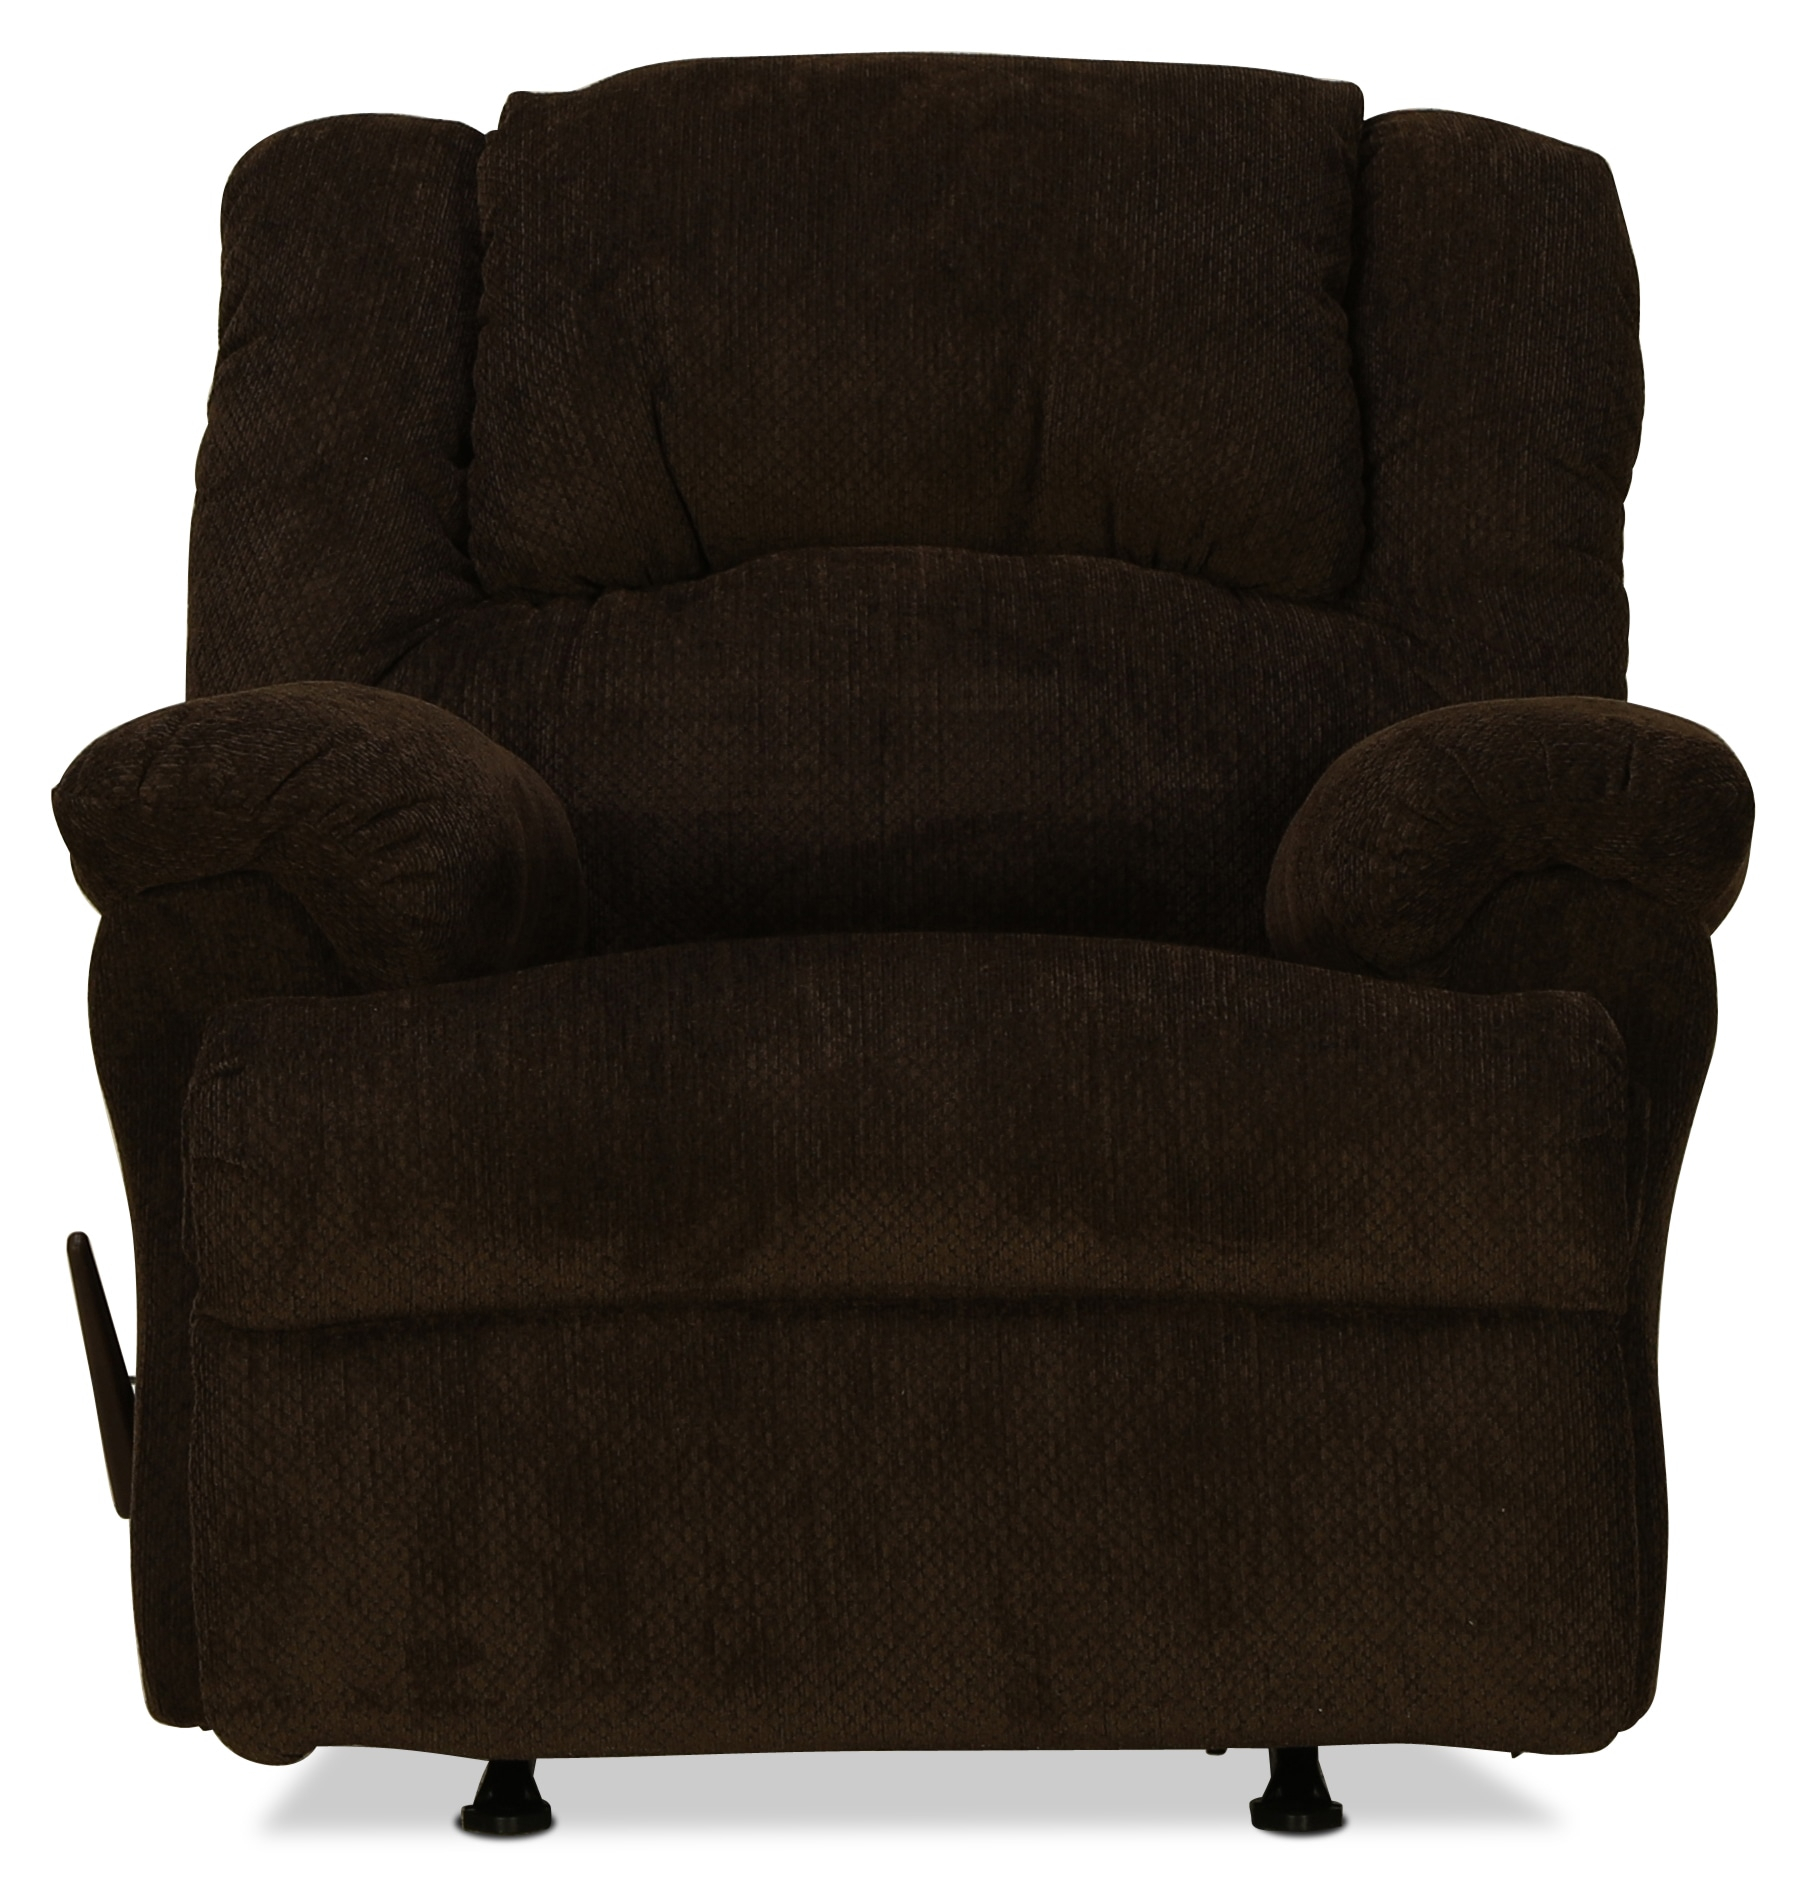 Decker Rocker Recliner – Chocolate | Pertaining To Decker Ii Fabric Swivel Glider Recliners (Image 8 of 20)